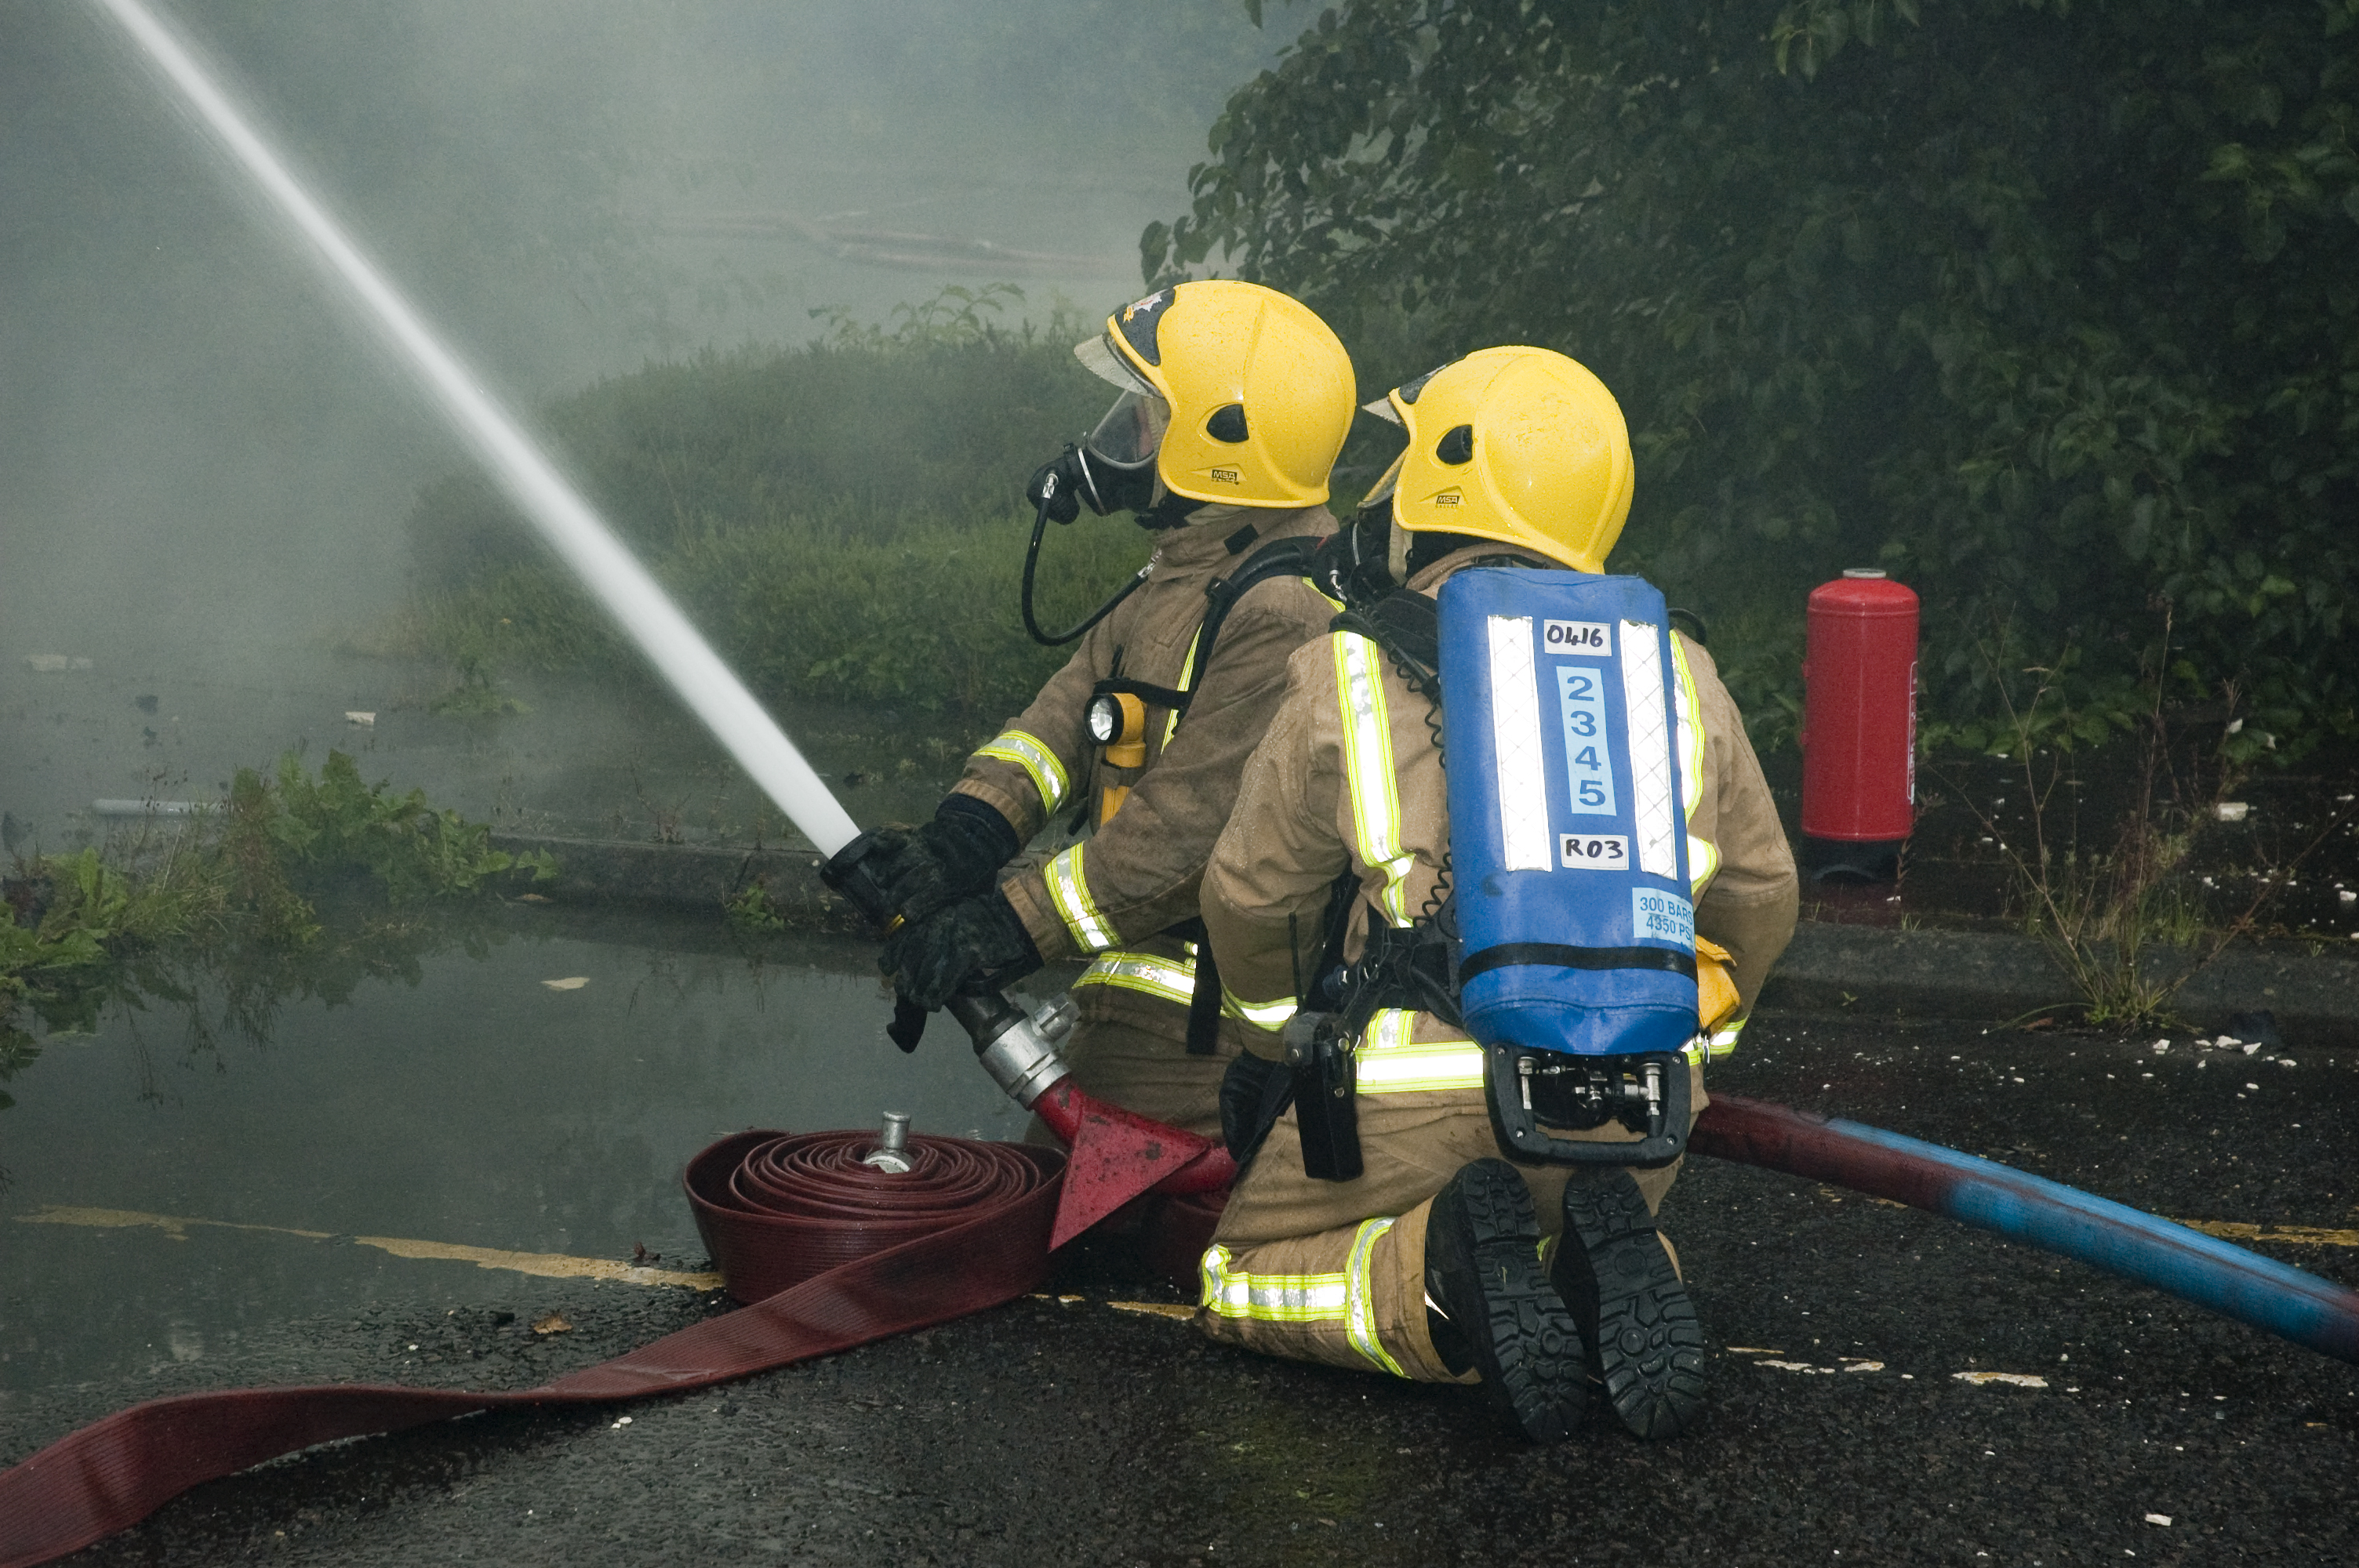 Firefighters tackle East Ayrshire blaze